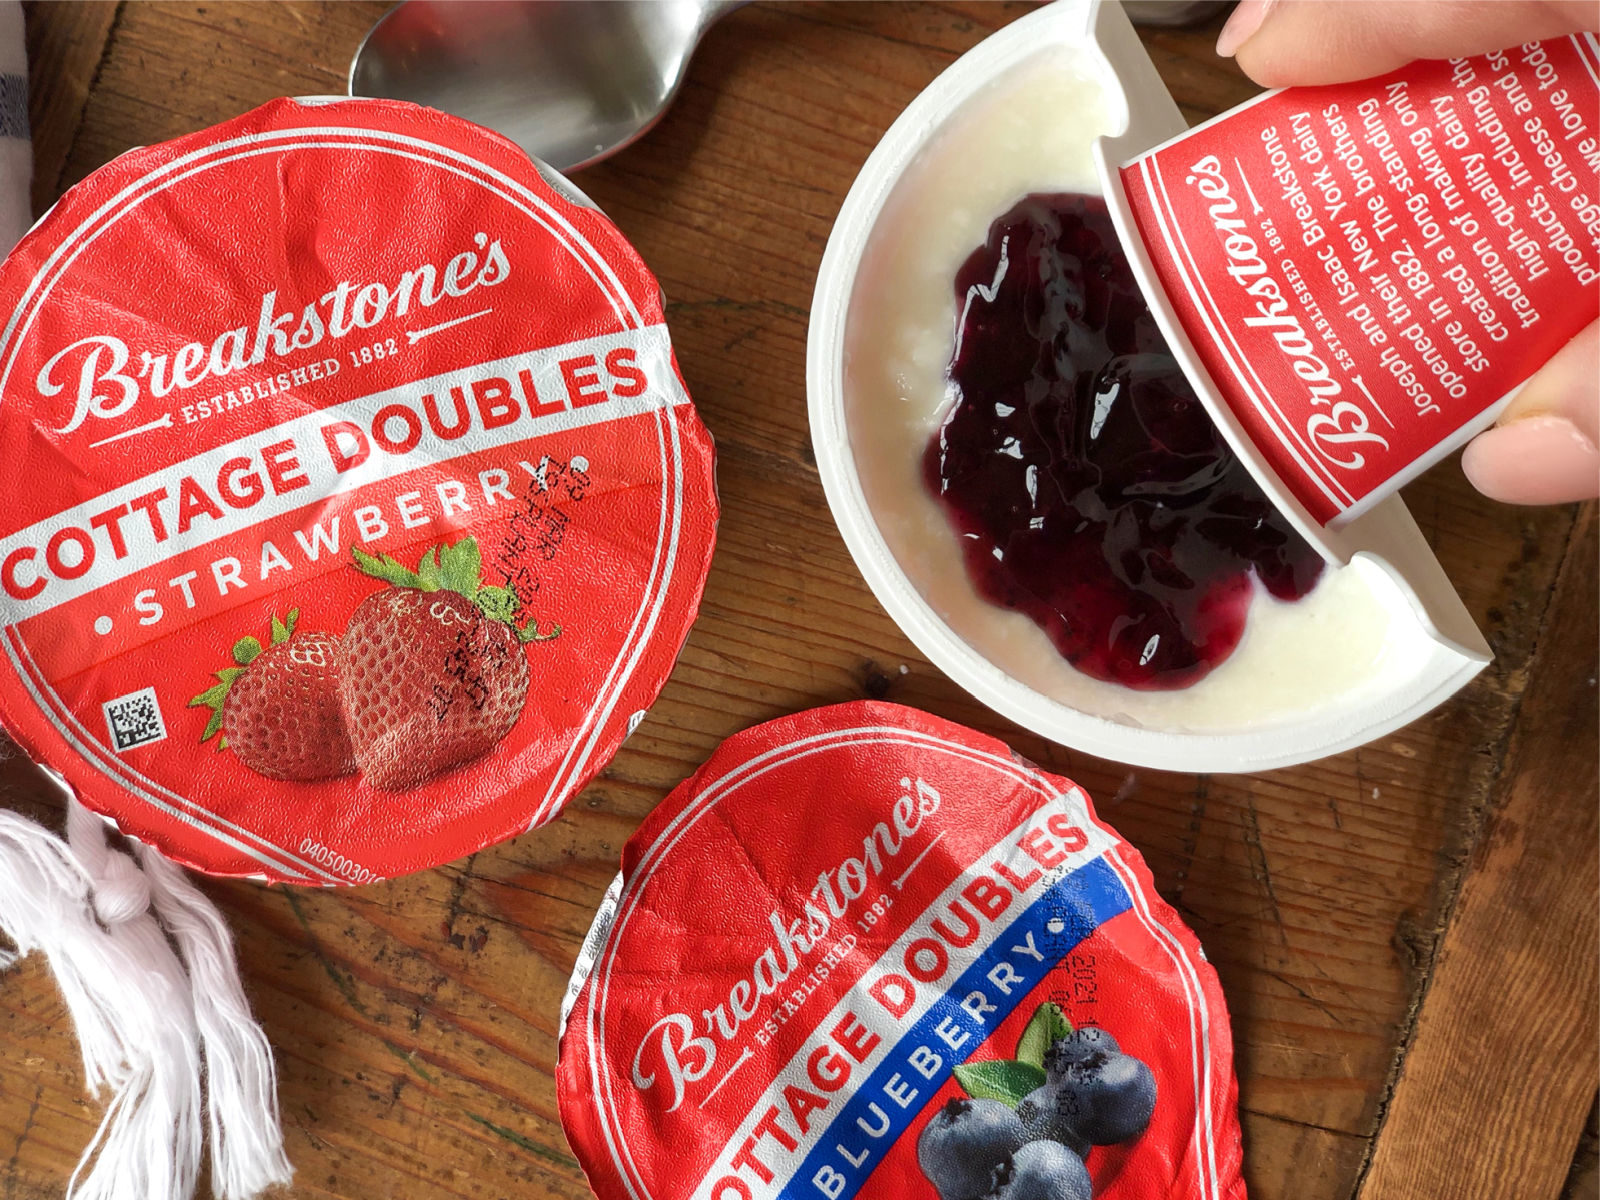 Scrumptious Snacking Made Easy - Breakstone's Cottage Doubles Are On Sale 5/$5 At Publix on I Heart Publix 1